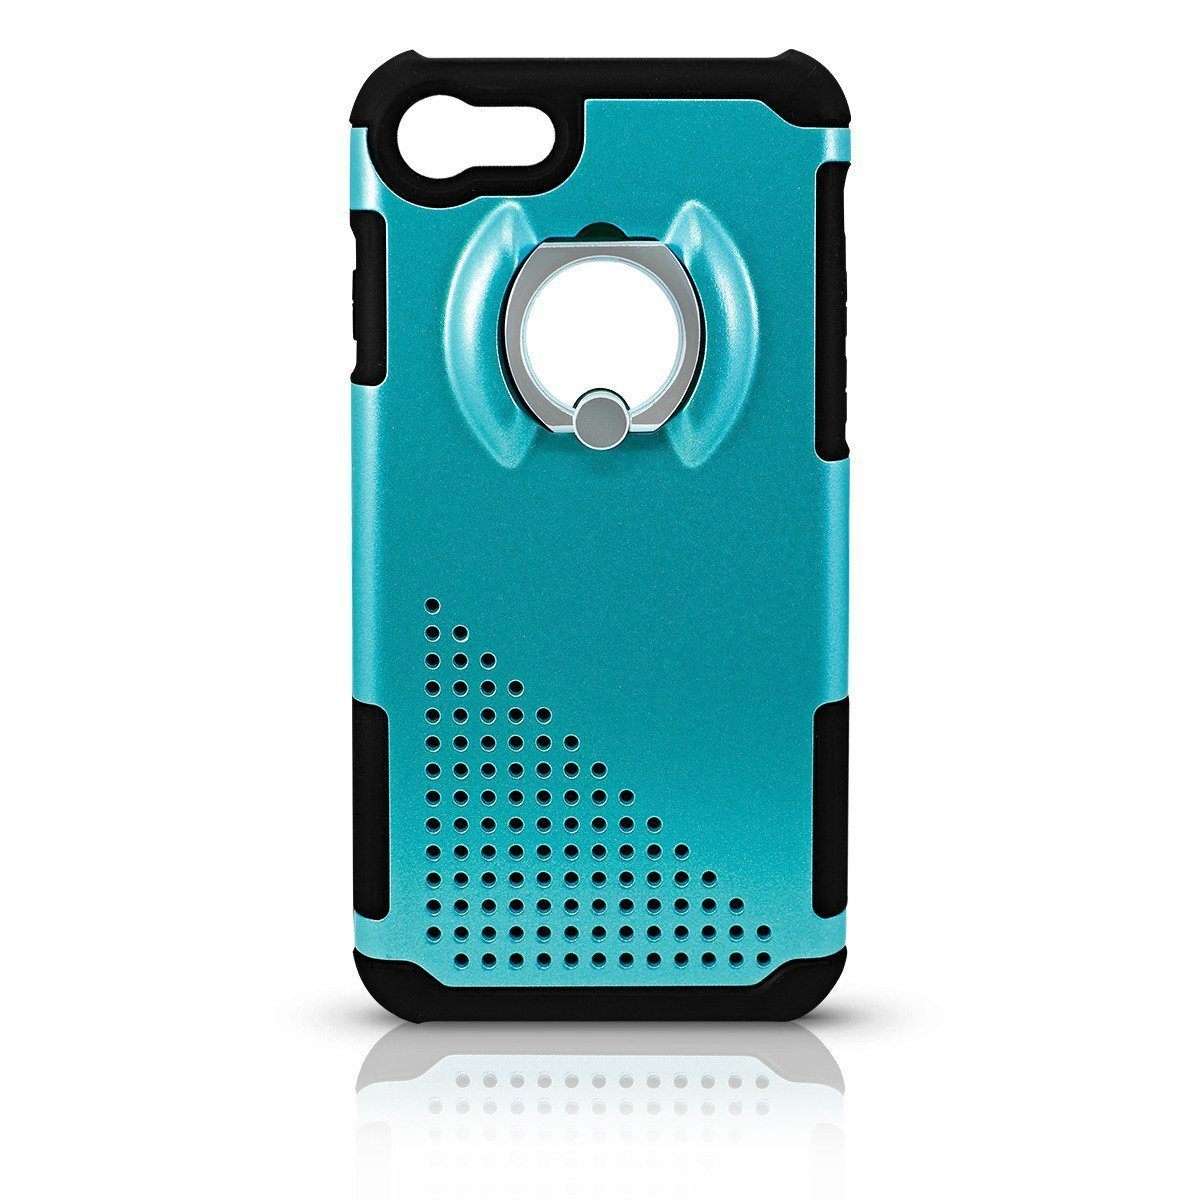 Dot Ring Case for i7p /8 Plus - Teal